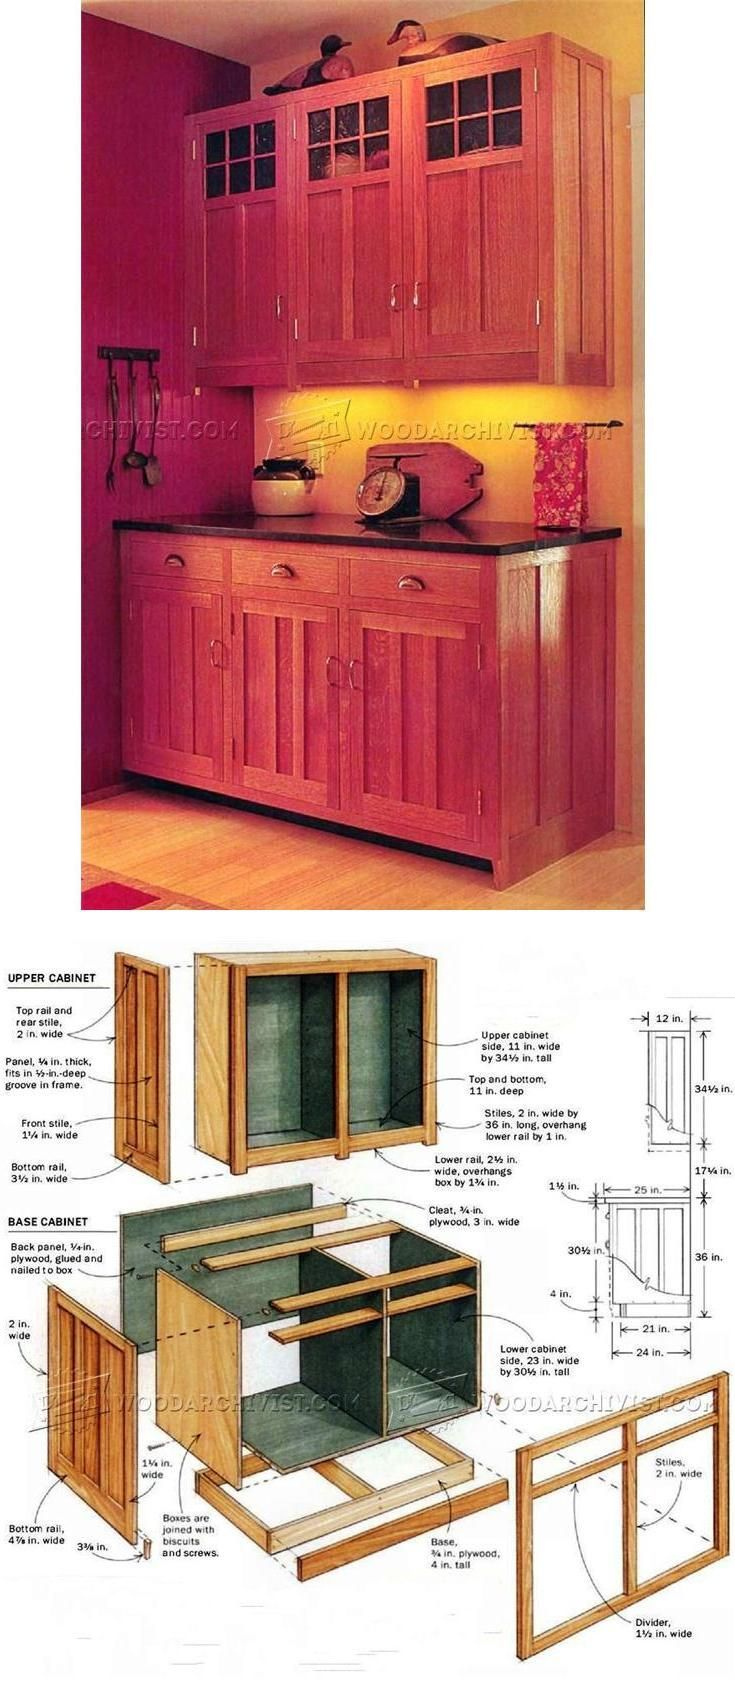 Lapierre cabinetry custom home theater cabinets bathroom cabinets - Kitchen Cabinets Plans Furniture Plans And Projects